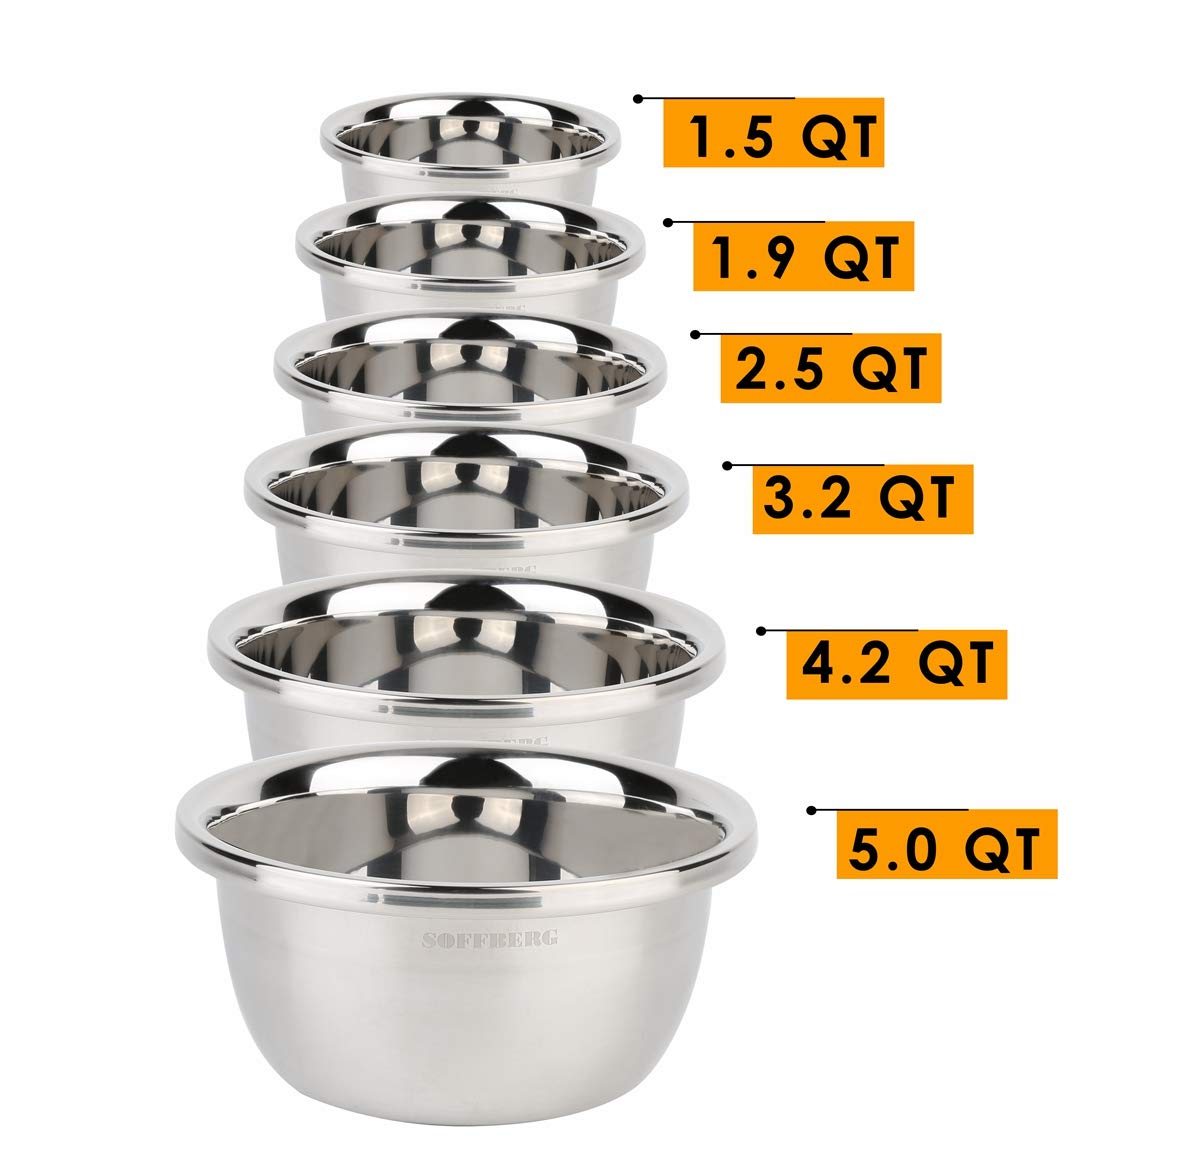 Set of 6 Mixing Bowls Stainless Steel Nesting and Convenient Storage for Meal prep, Salad, Cooking, Baking, Serving by SOFFBERG (Image #2)